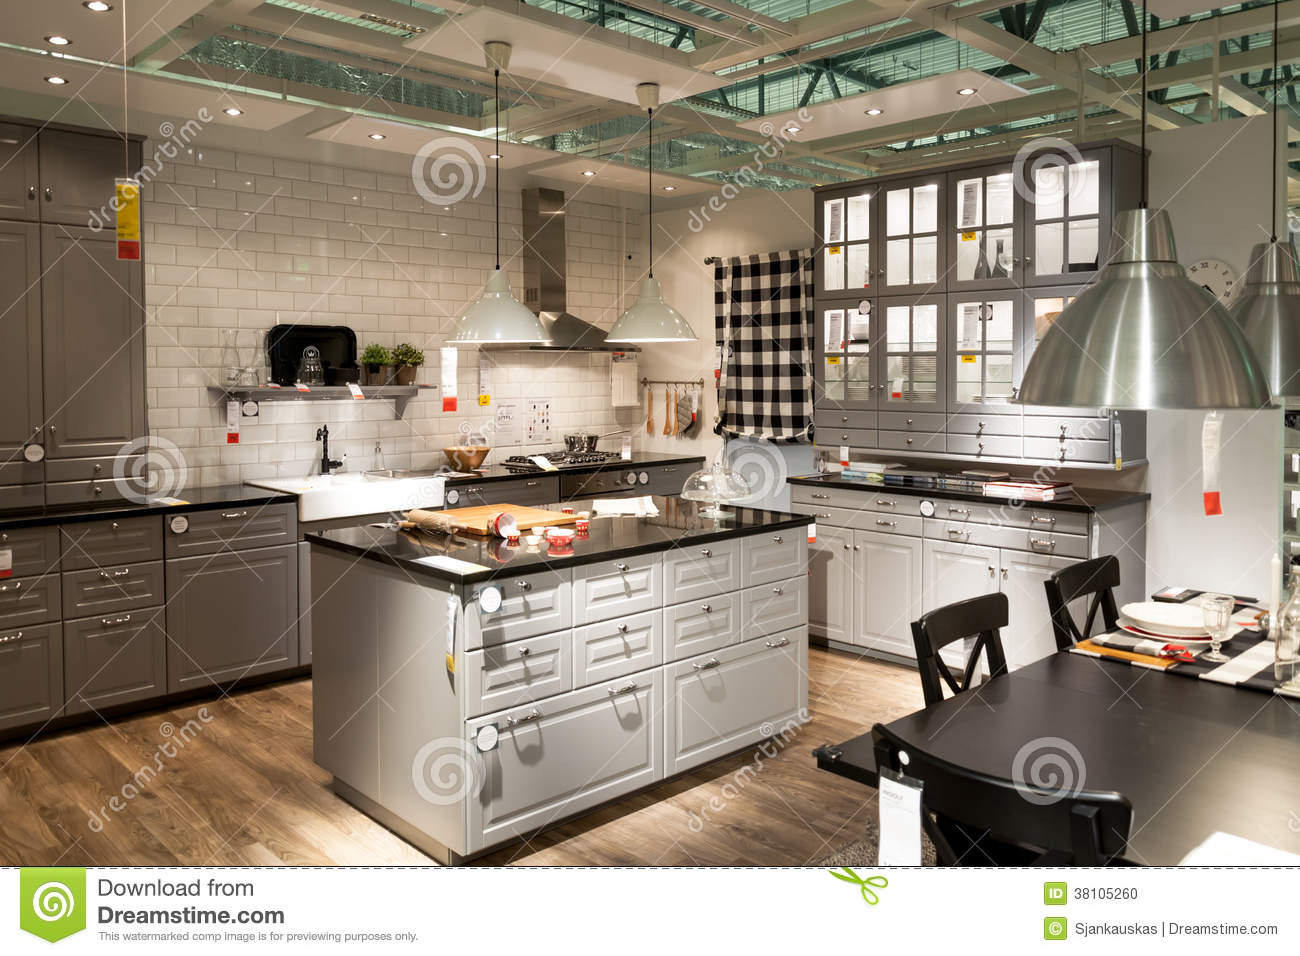 Cucina Ikea In Acciaio Cucine In Acciaio Per Casa Gorgeous Black And White Kitchen With